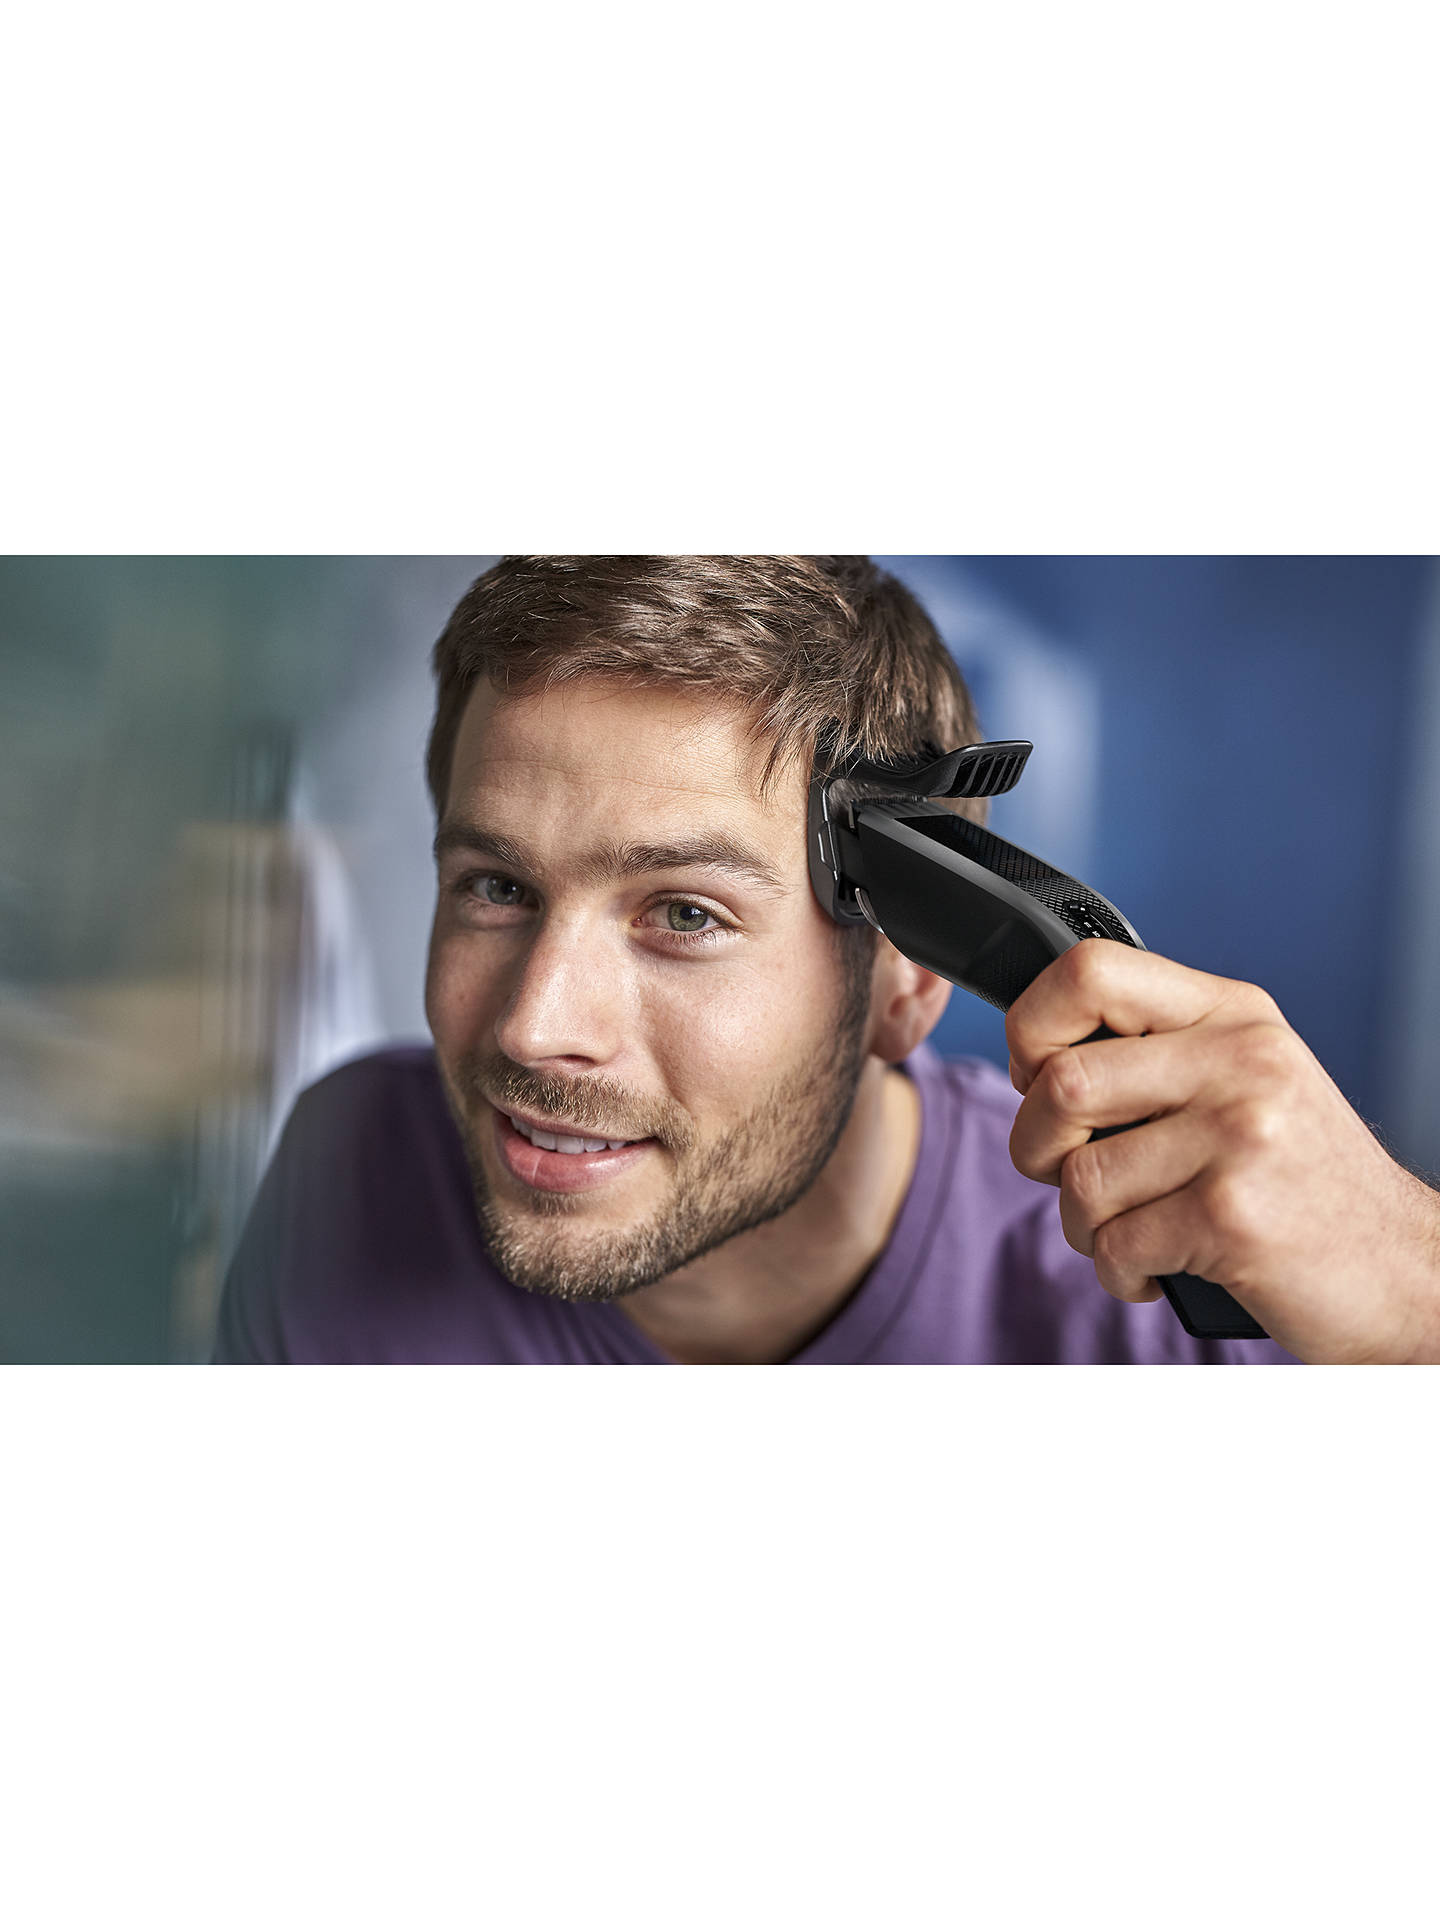 BuyPhilips HC3520/13 Series 3000 Hair Clipper, Grey Online at johnlewis.com